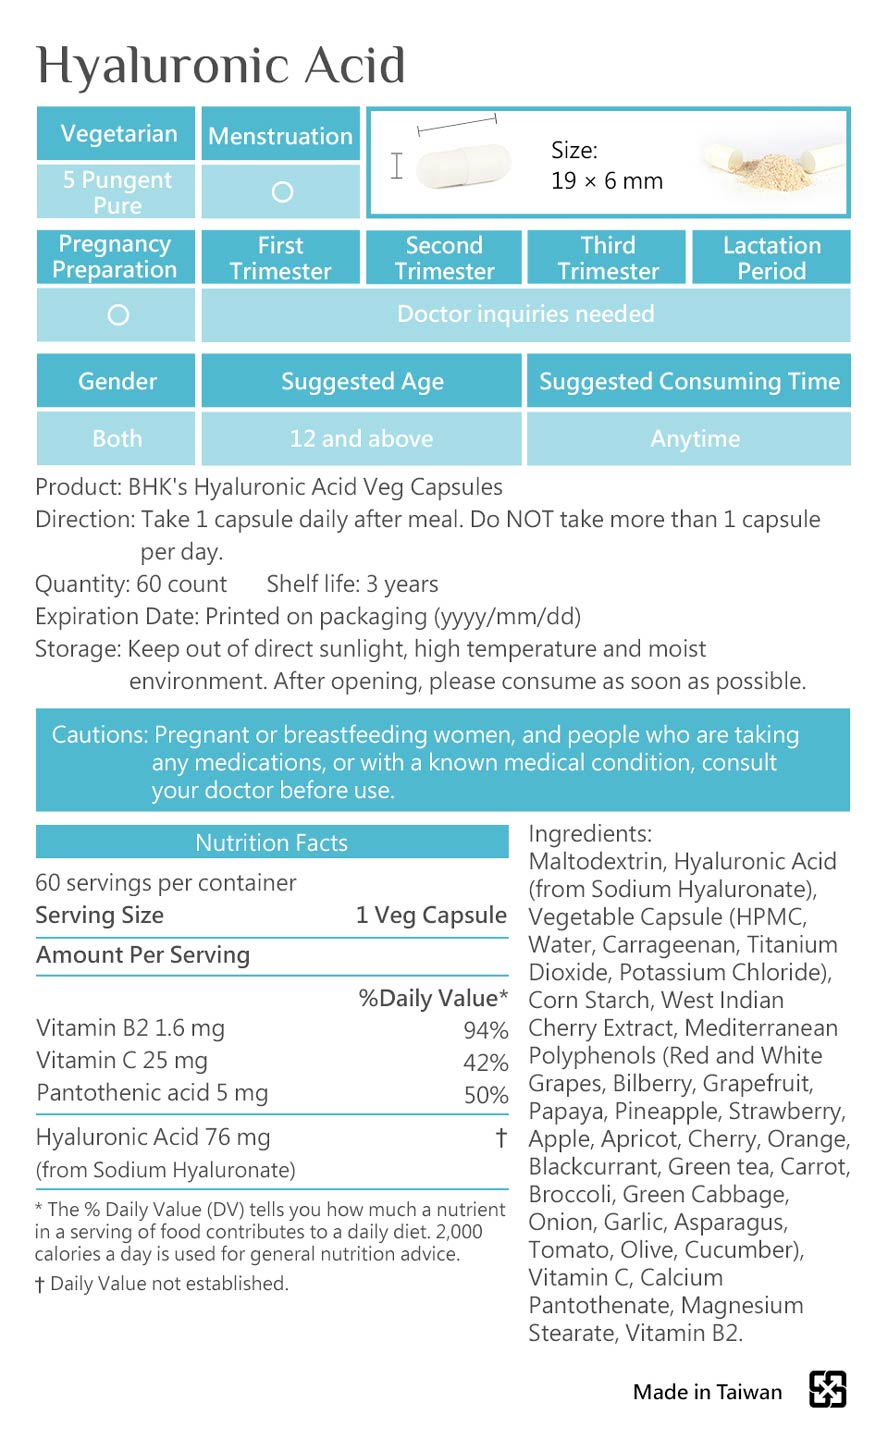 BHK's Hyaluronic-acid uses 95% high concentration patented hyaluronic-acid that is the best in market.